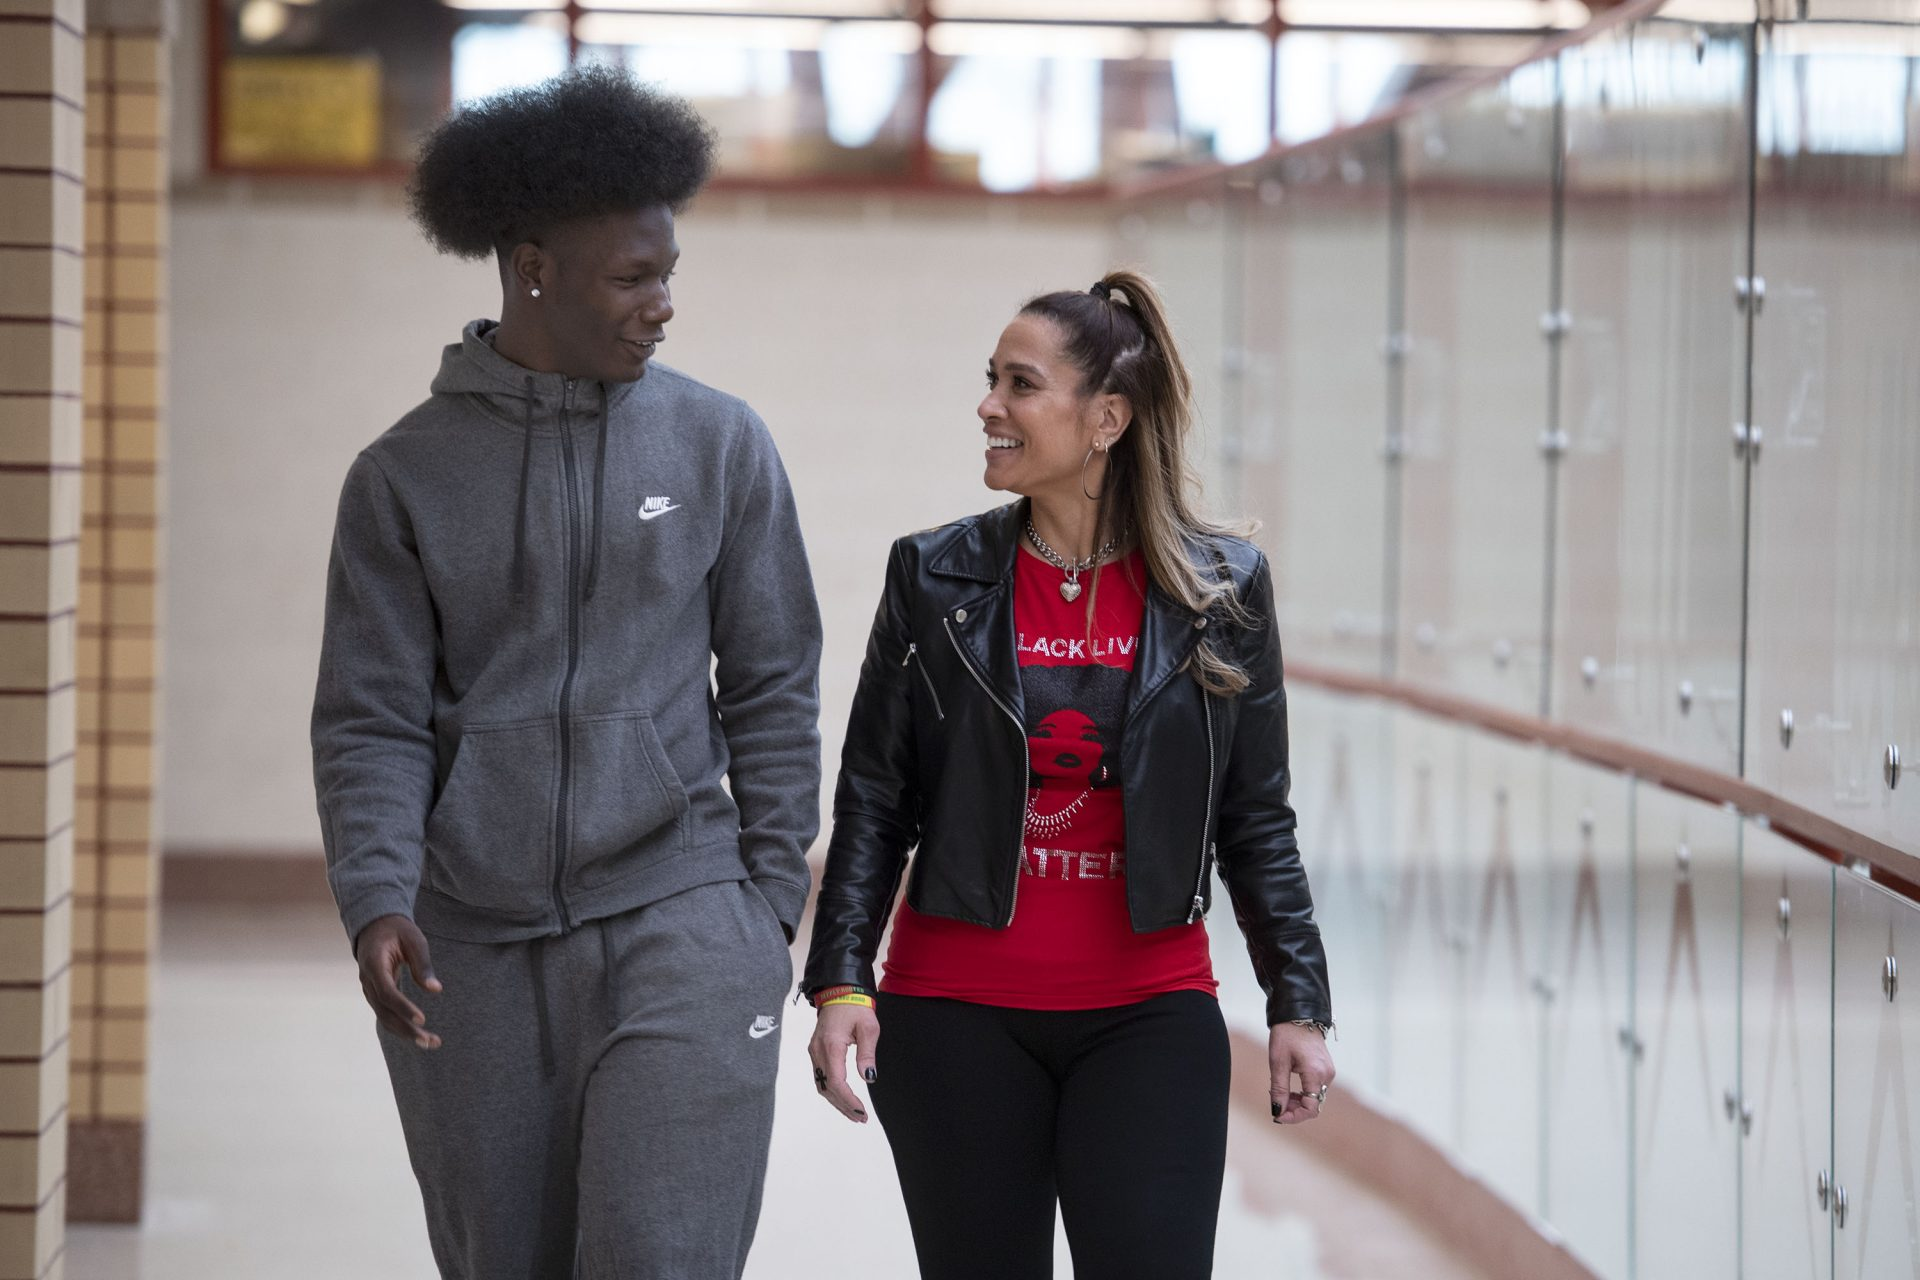 Penn Hills High School senior class counselor Dr. Amy Alexander talks with one of her seniors S-qy Featherstone on Friday, Jan. 24, 2020 in Penn Hills. Featherstone is a member of the schools Black Student Union.